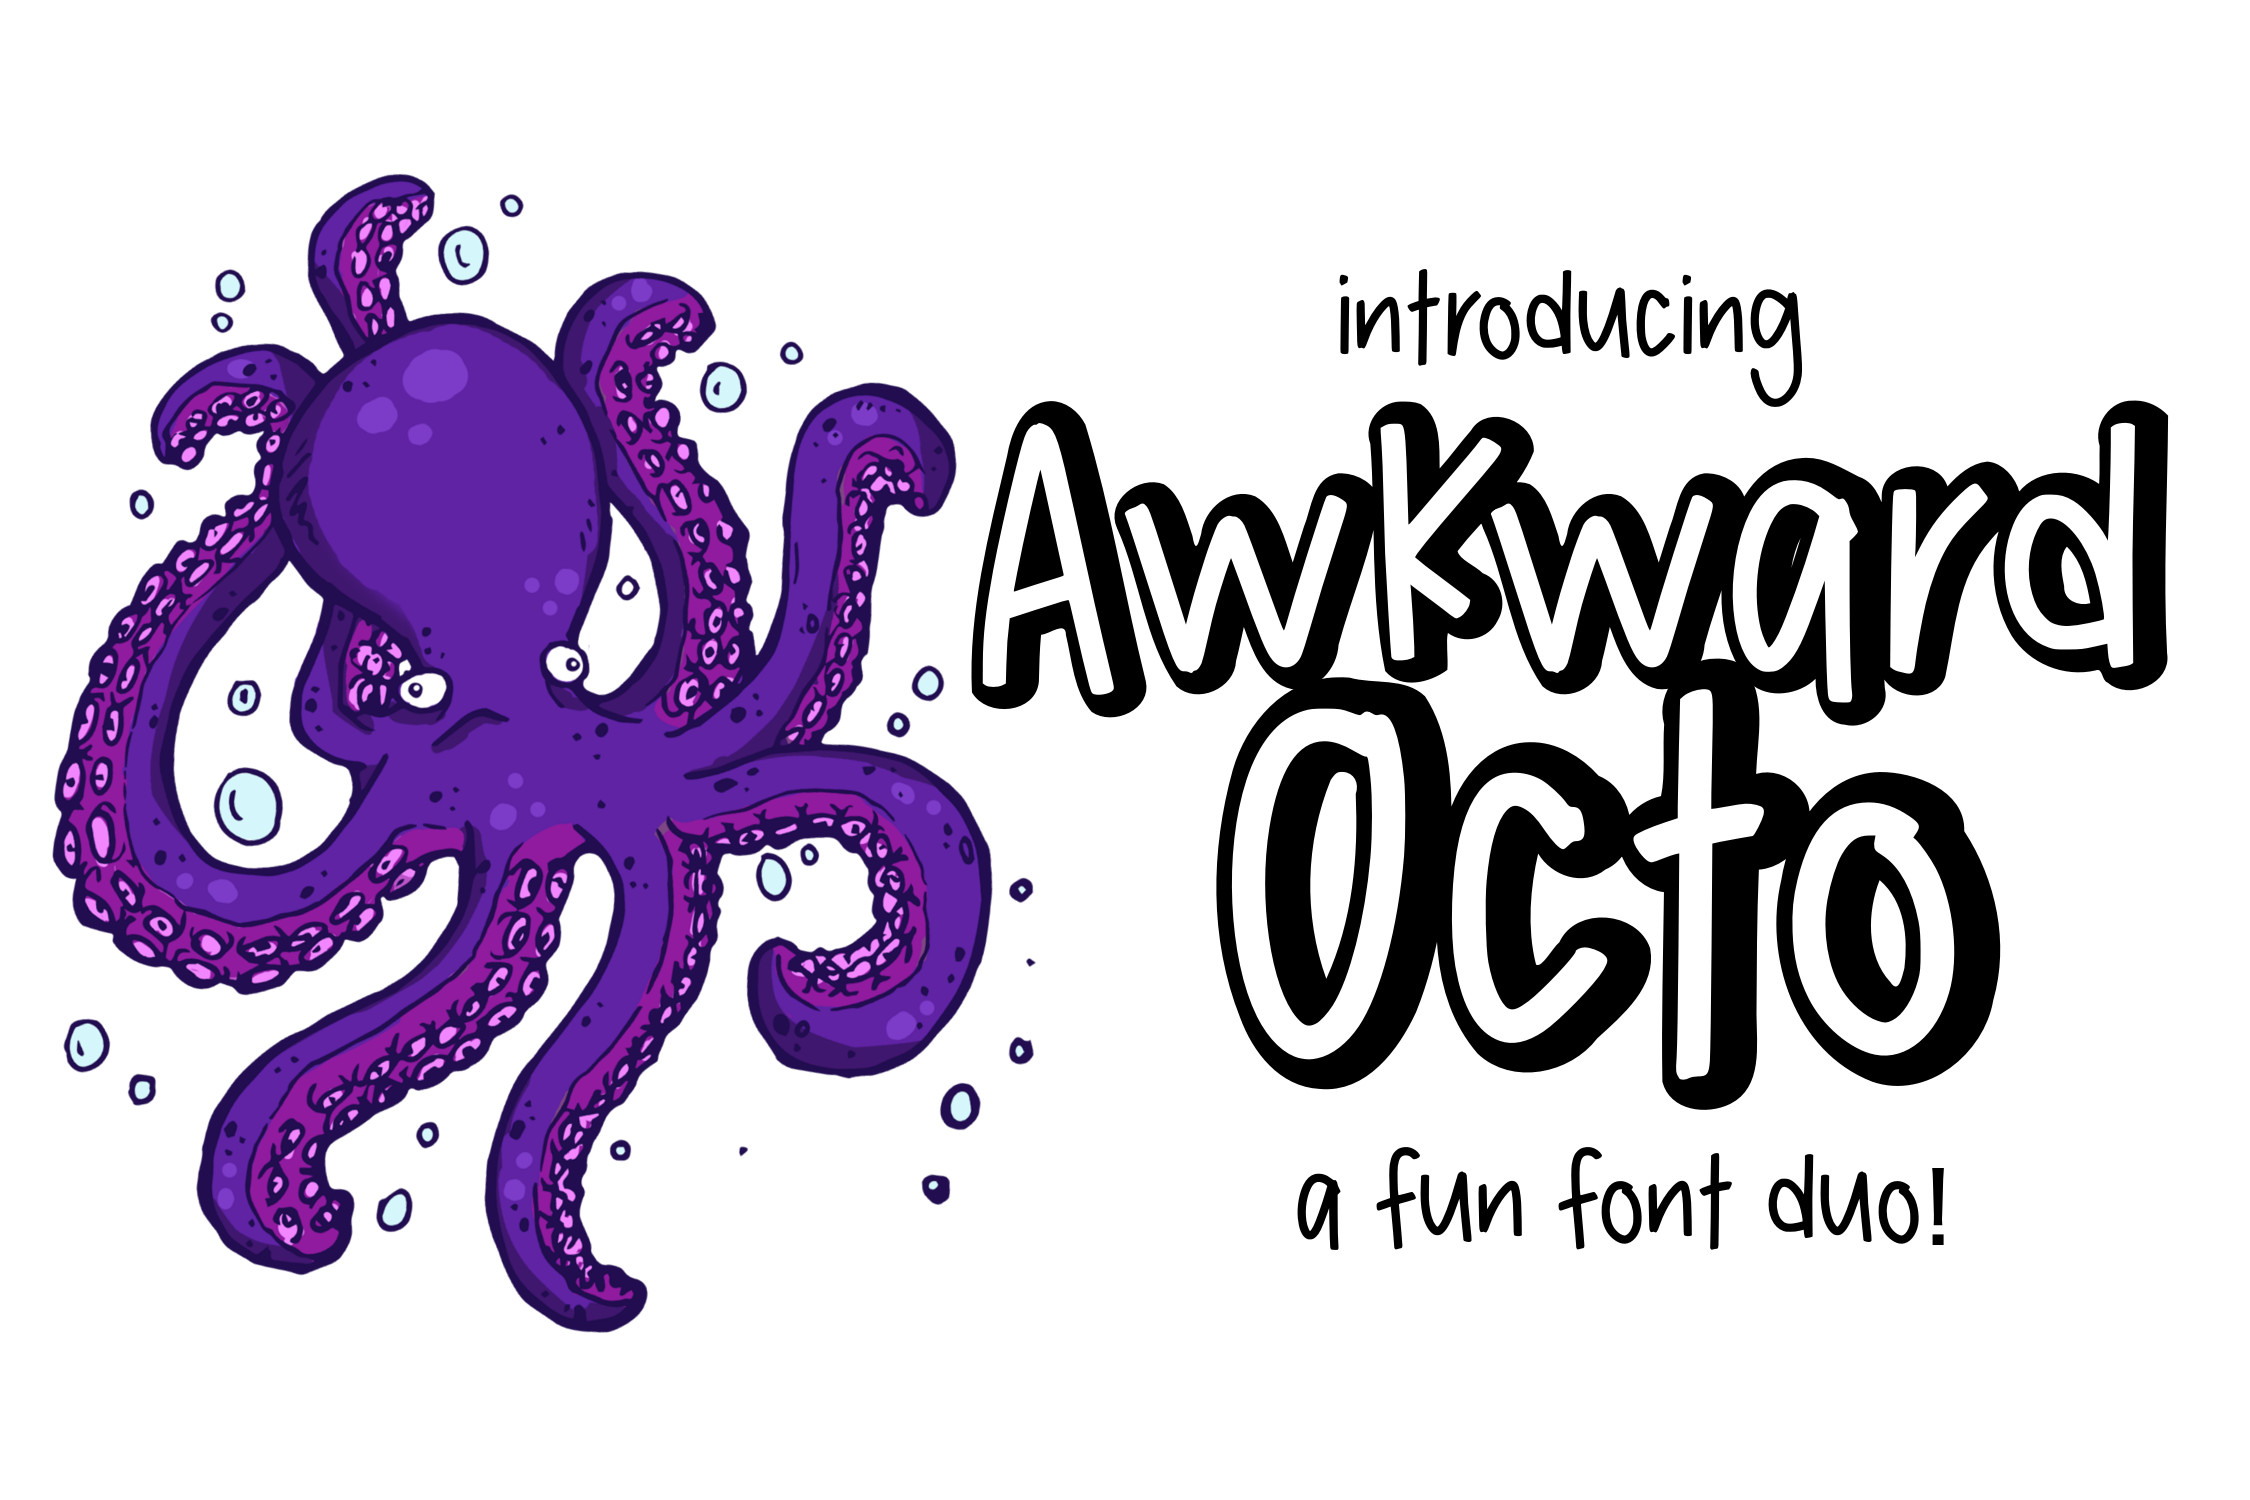 Awkward Octo a font Duo example image 1